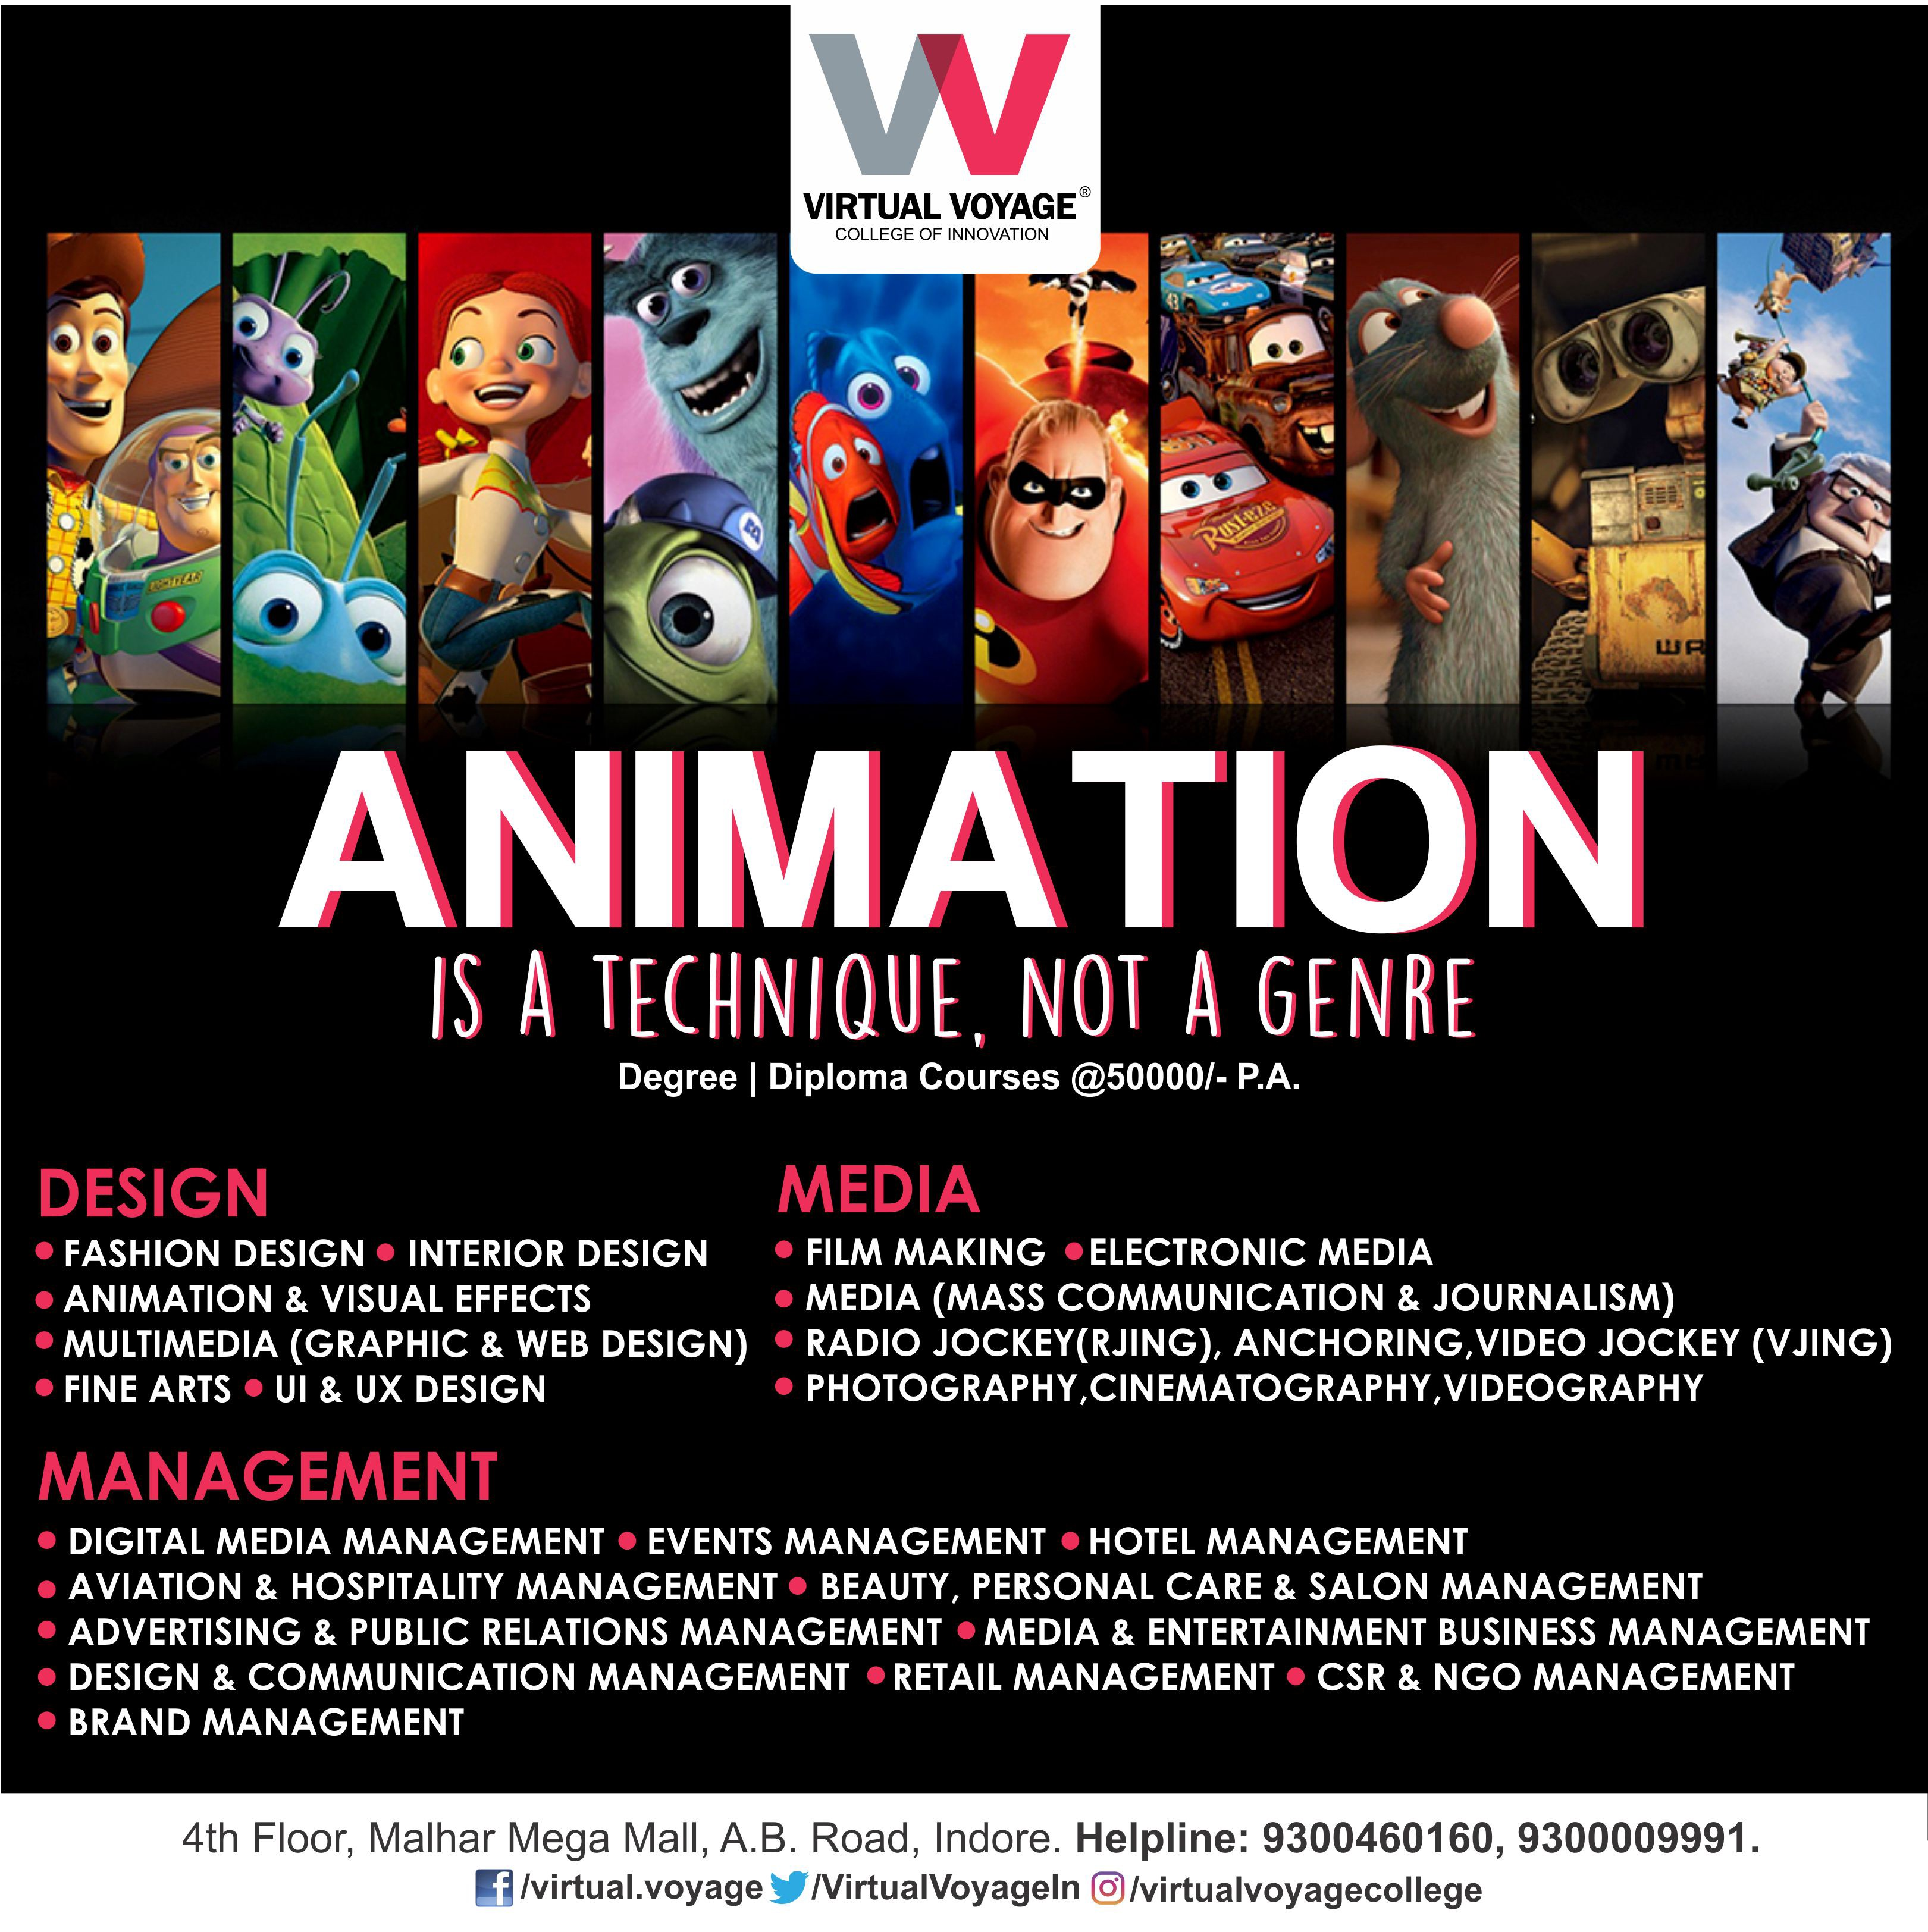 Best Courses In Animation Visual Effects From Virtual Voyage College Indore India By Virtualvoyage Medium